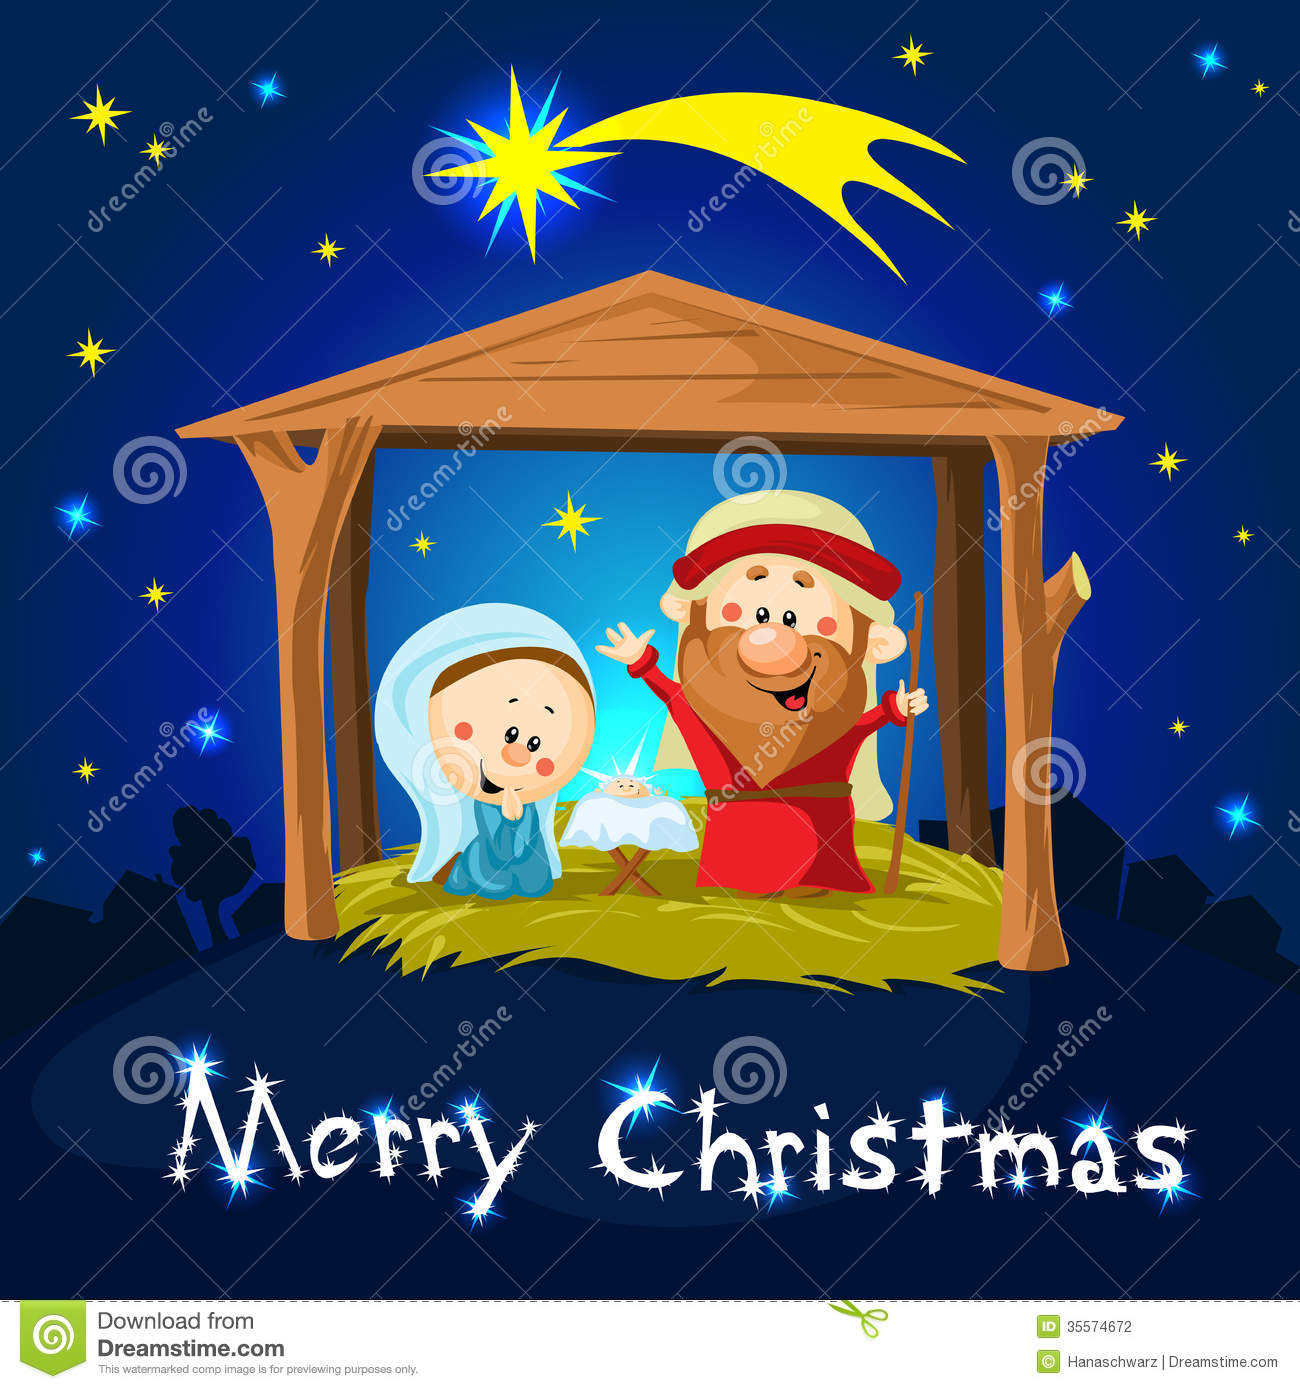 Merry christmas clip art for facebook image stock Christmas bethlehem clipart for facebook - ClipartFox image stock